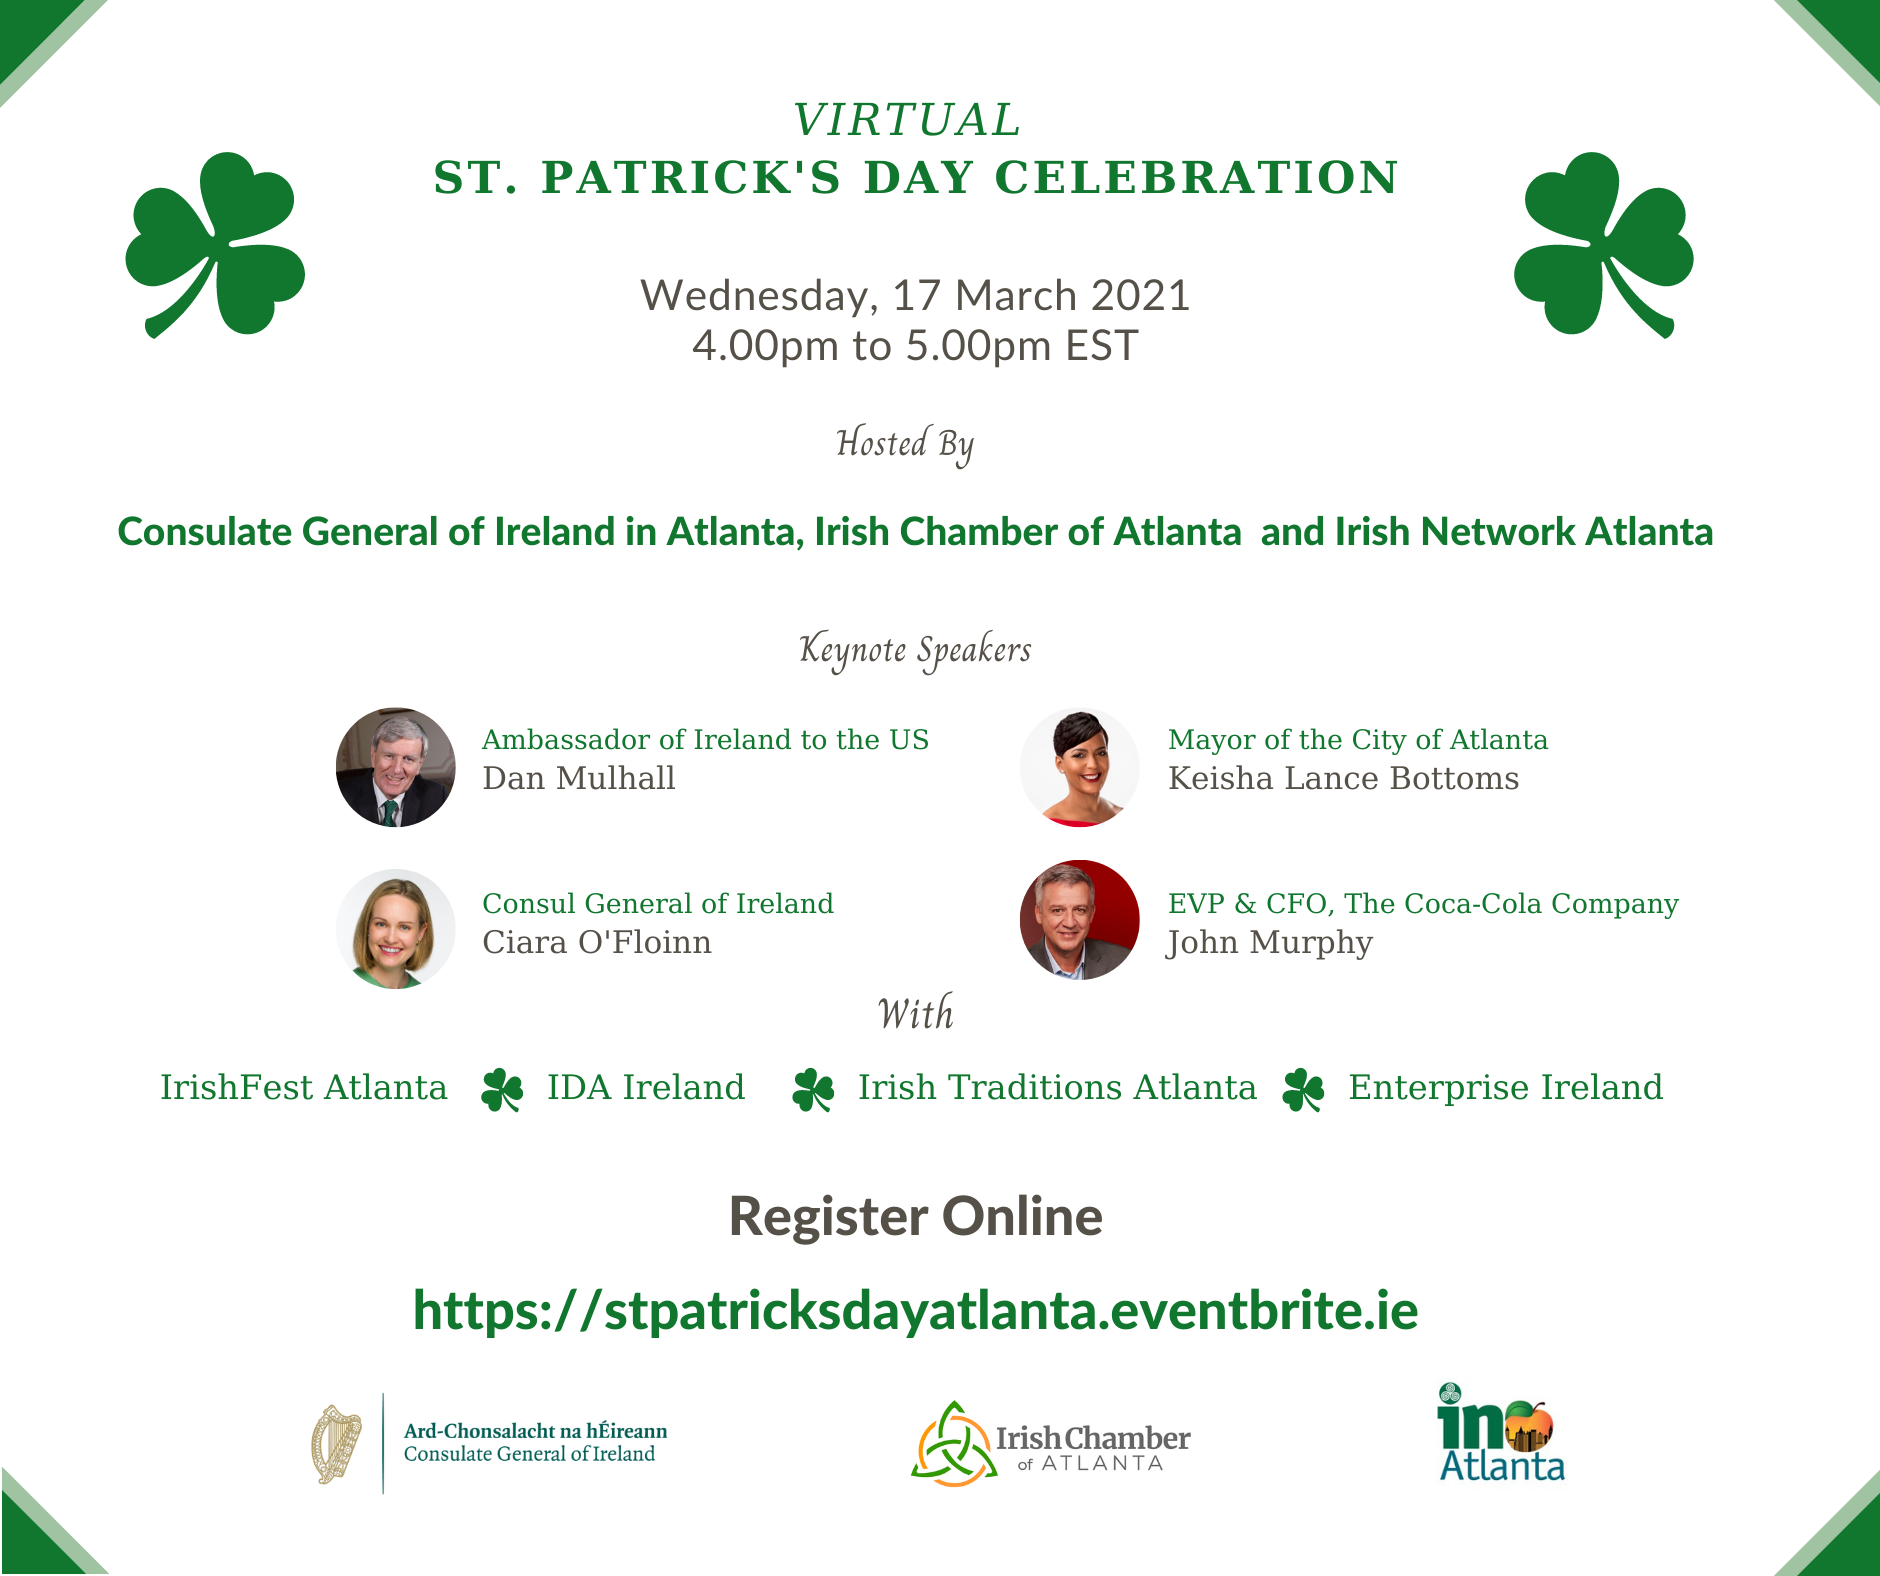 St. Patrick's Day Virtual Celebration